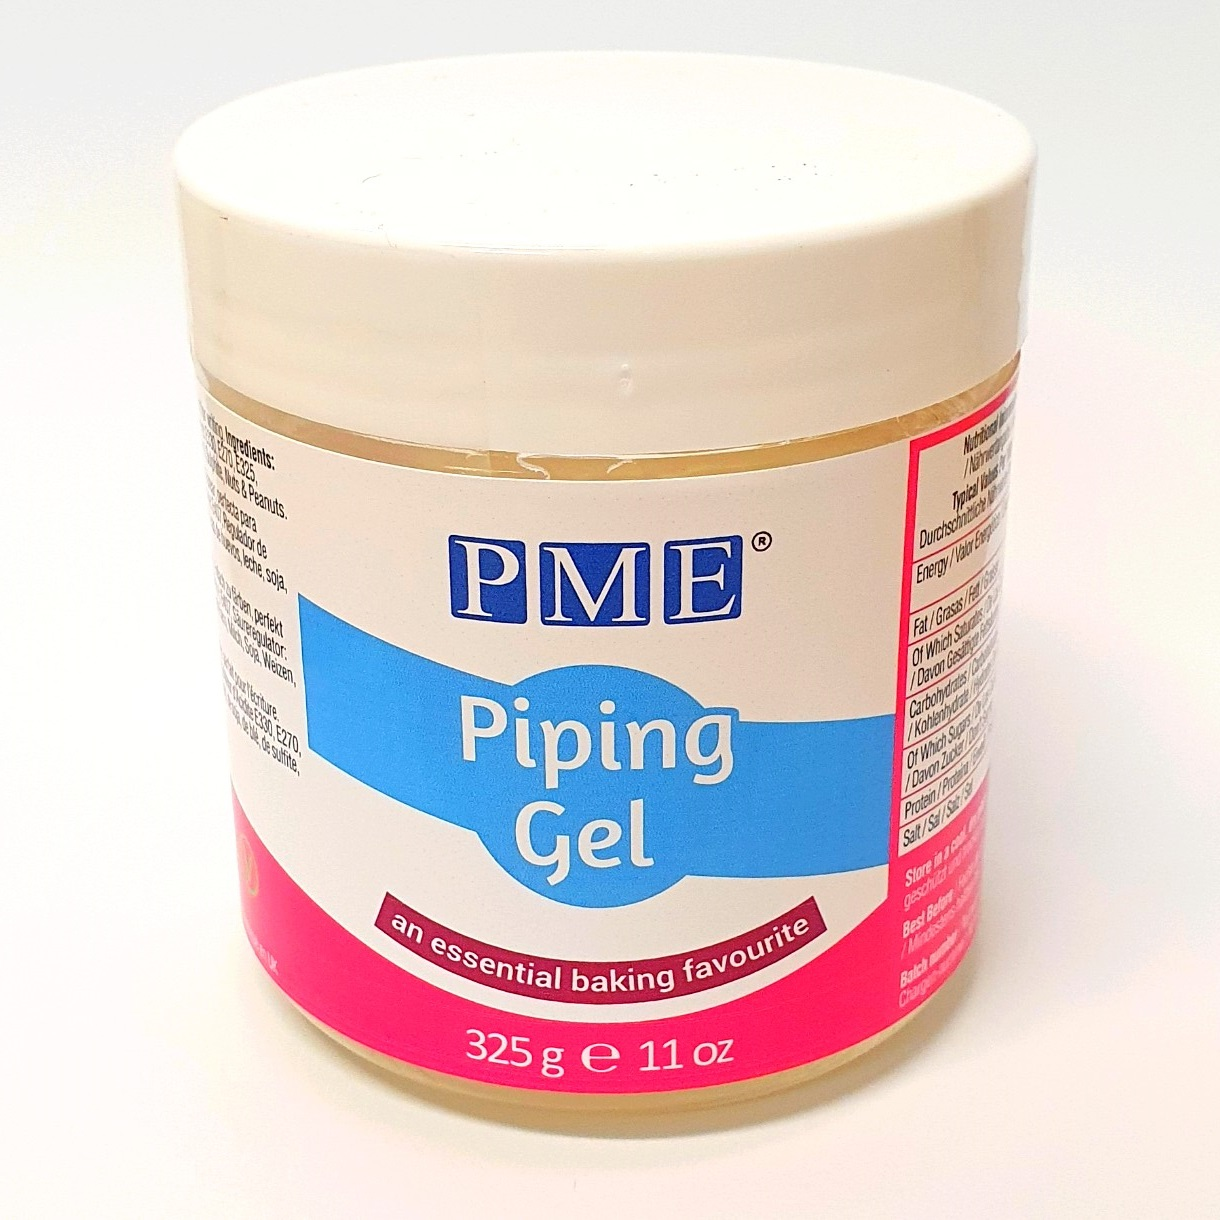 Piping gel 325g - PME